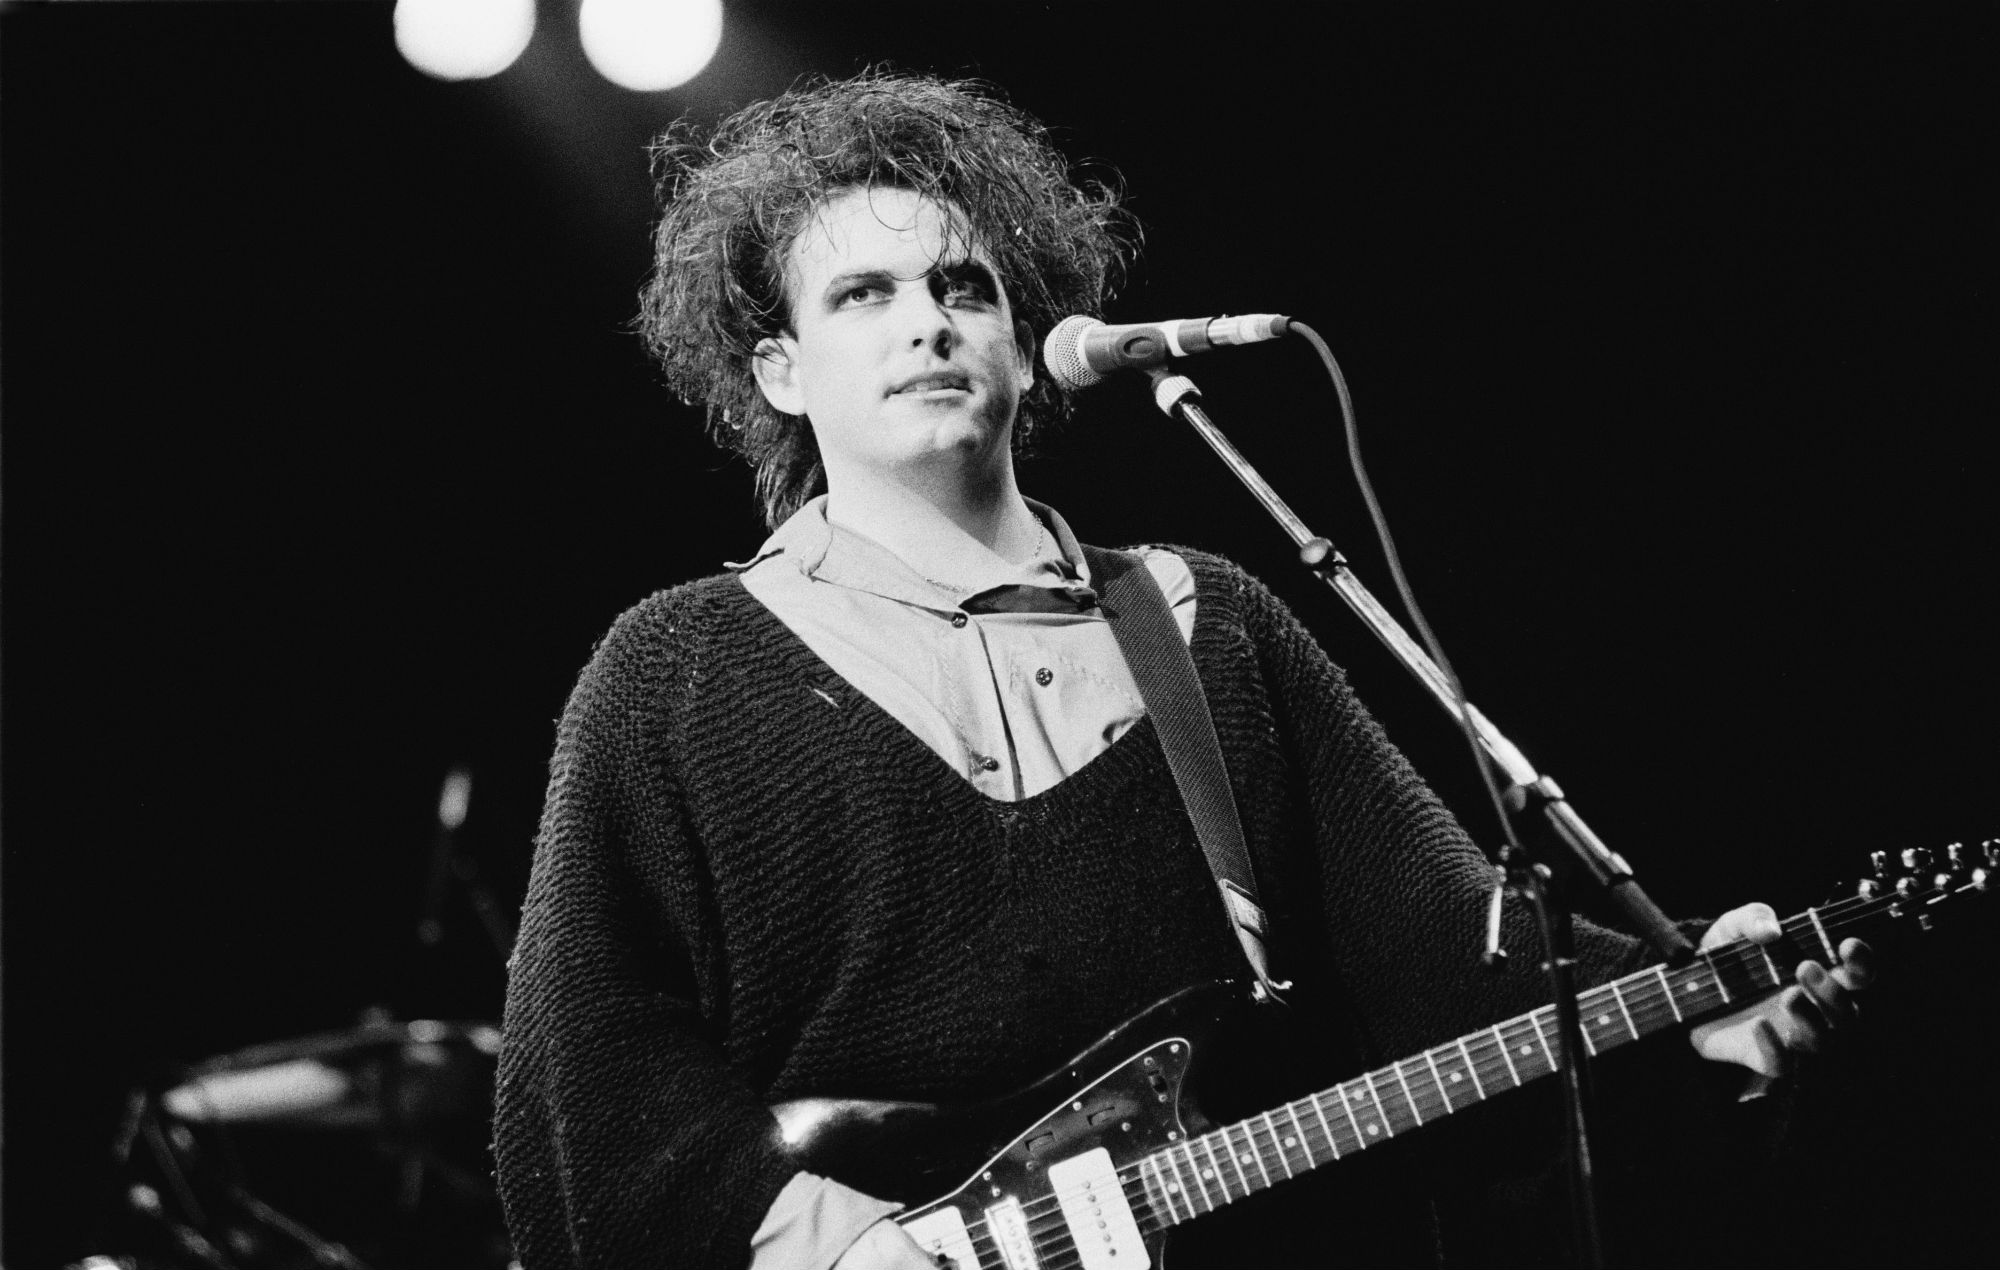 Fans Send Birthday Wishes To Robert Smith As The Cure Frontman